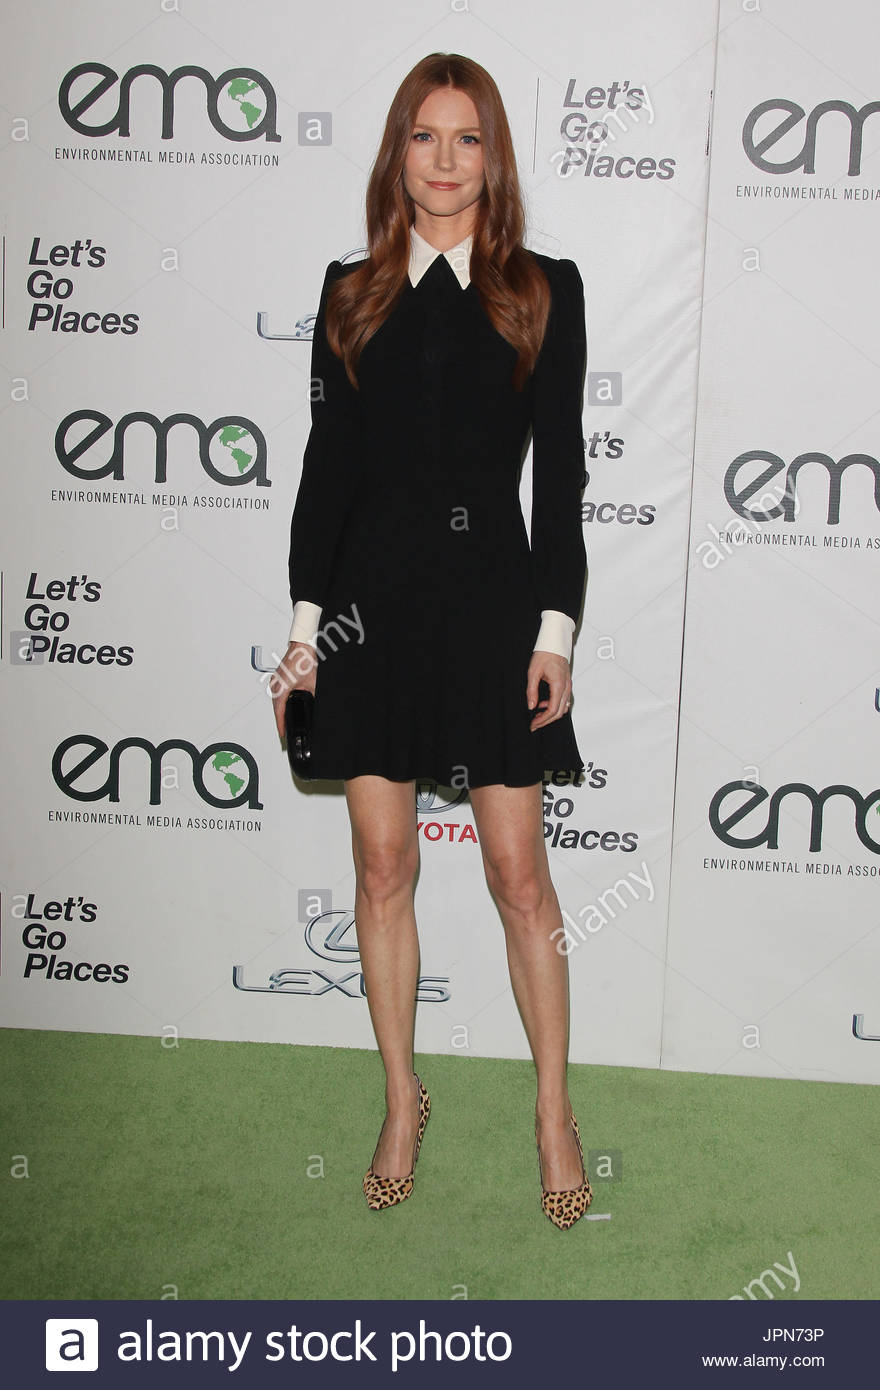 Darby Stanchfield Darby Stanchfield new pictures